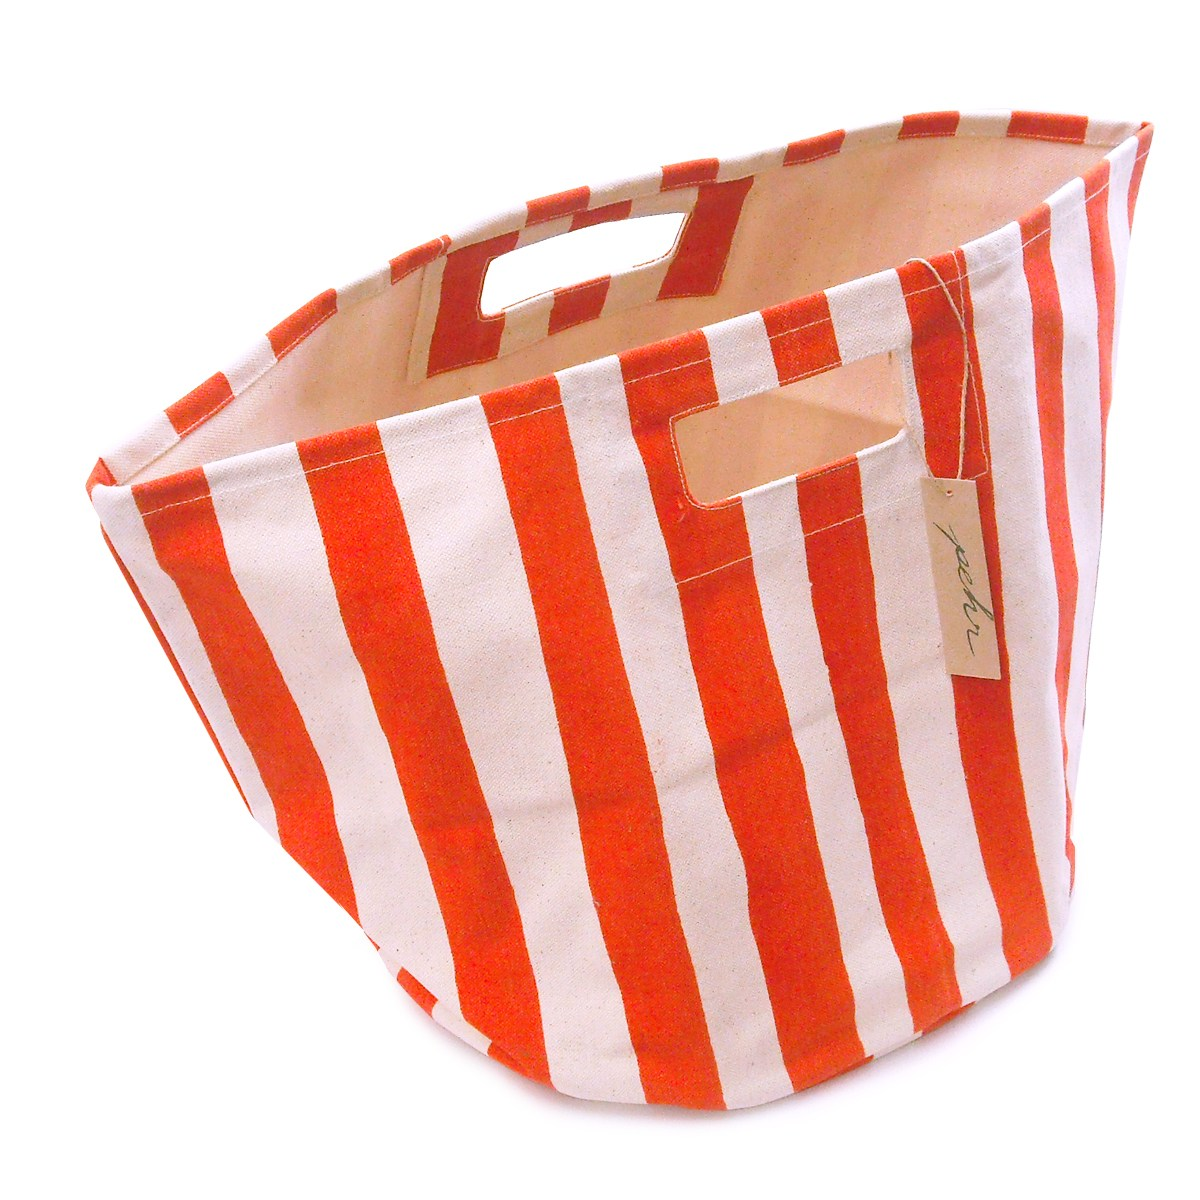 Pehr Strage Bin / Stripe Orange / Stripes Orange Living Room Storage, Small  Glove Compartment Fabric Storage Box, Color Box, Canvas, Folding Type